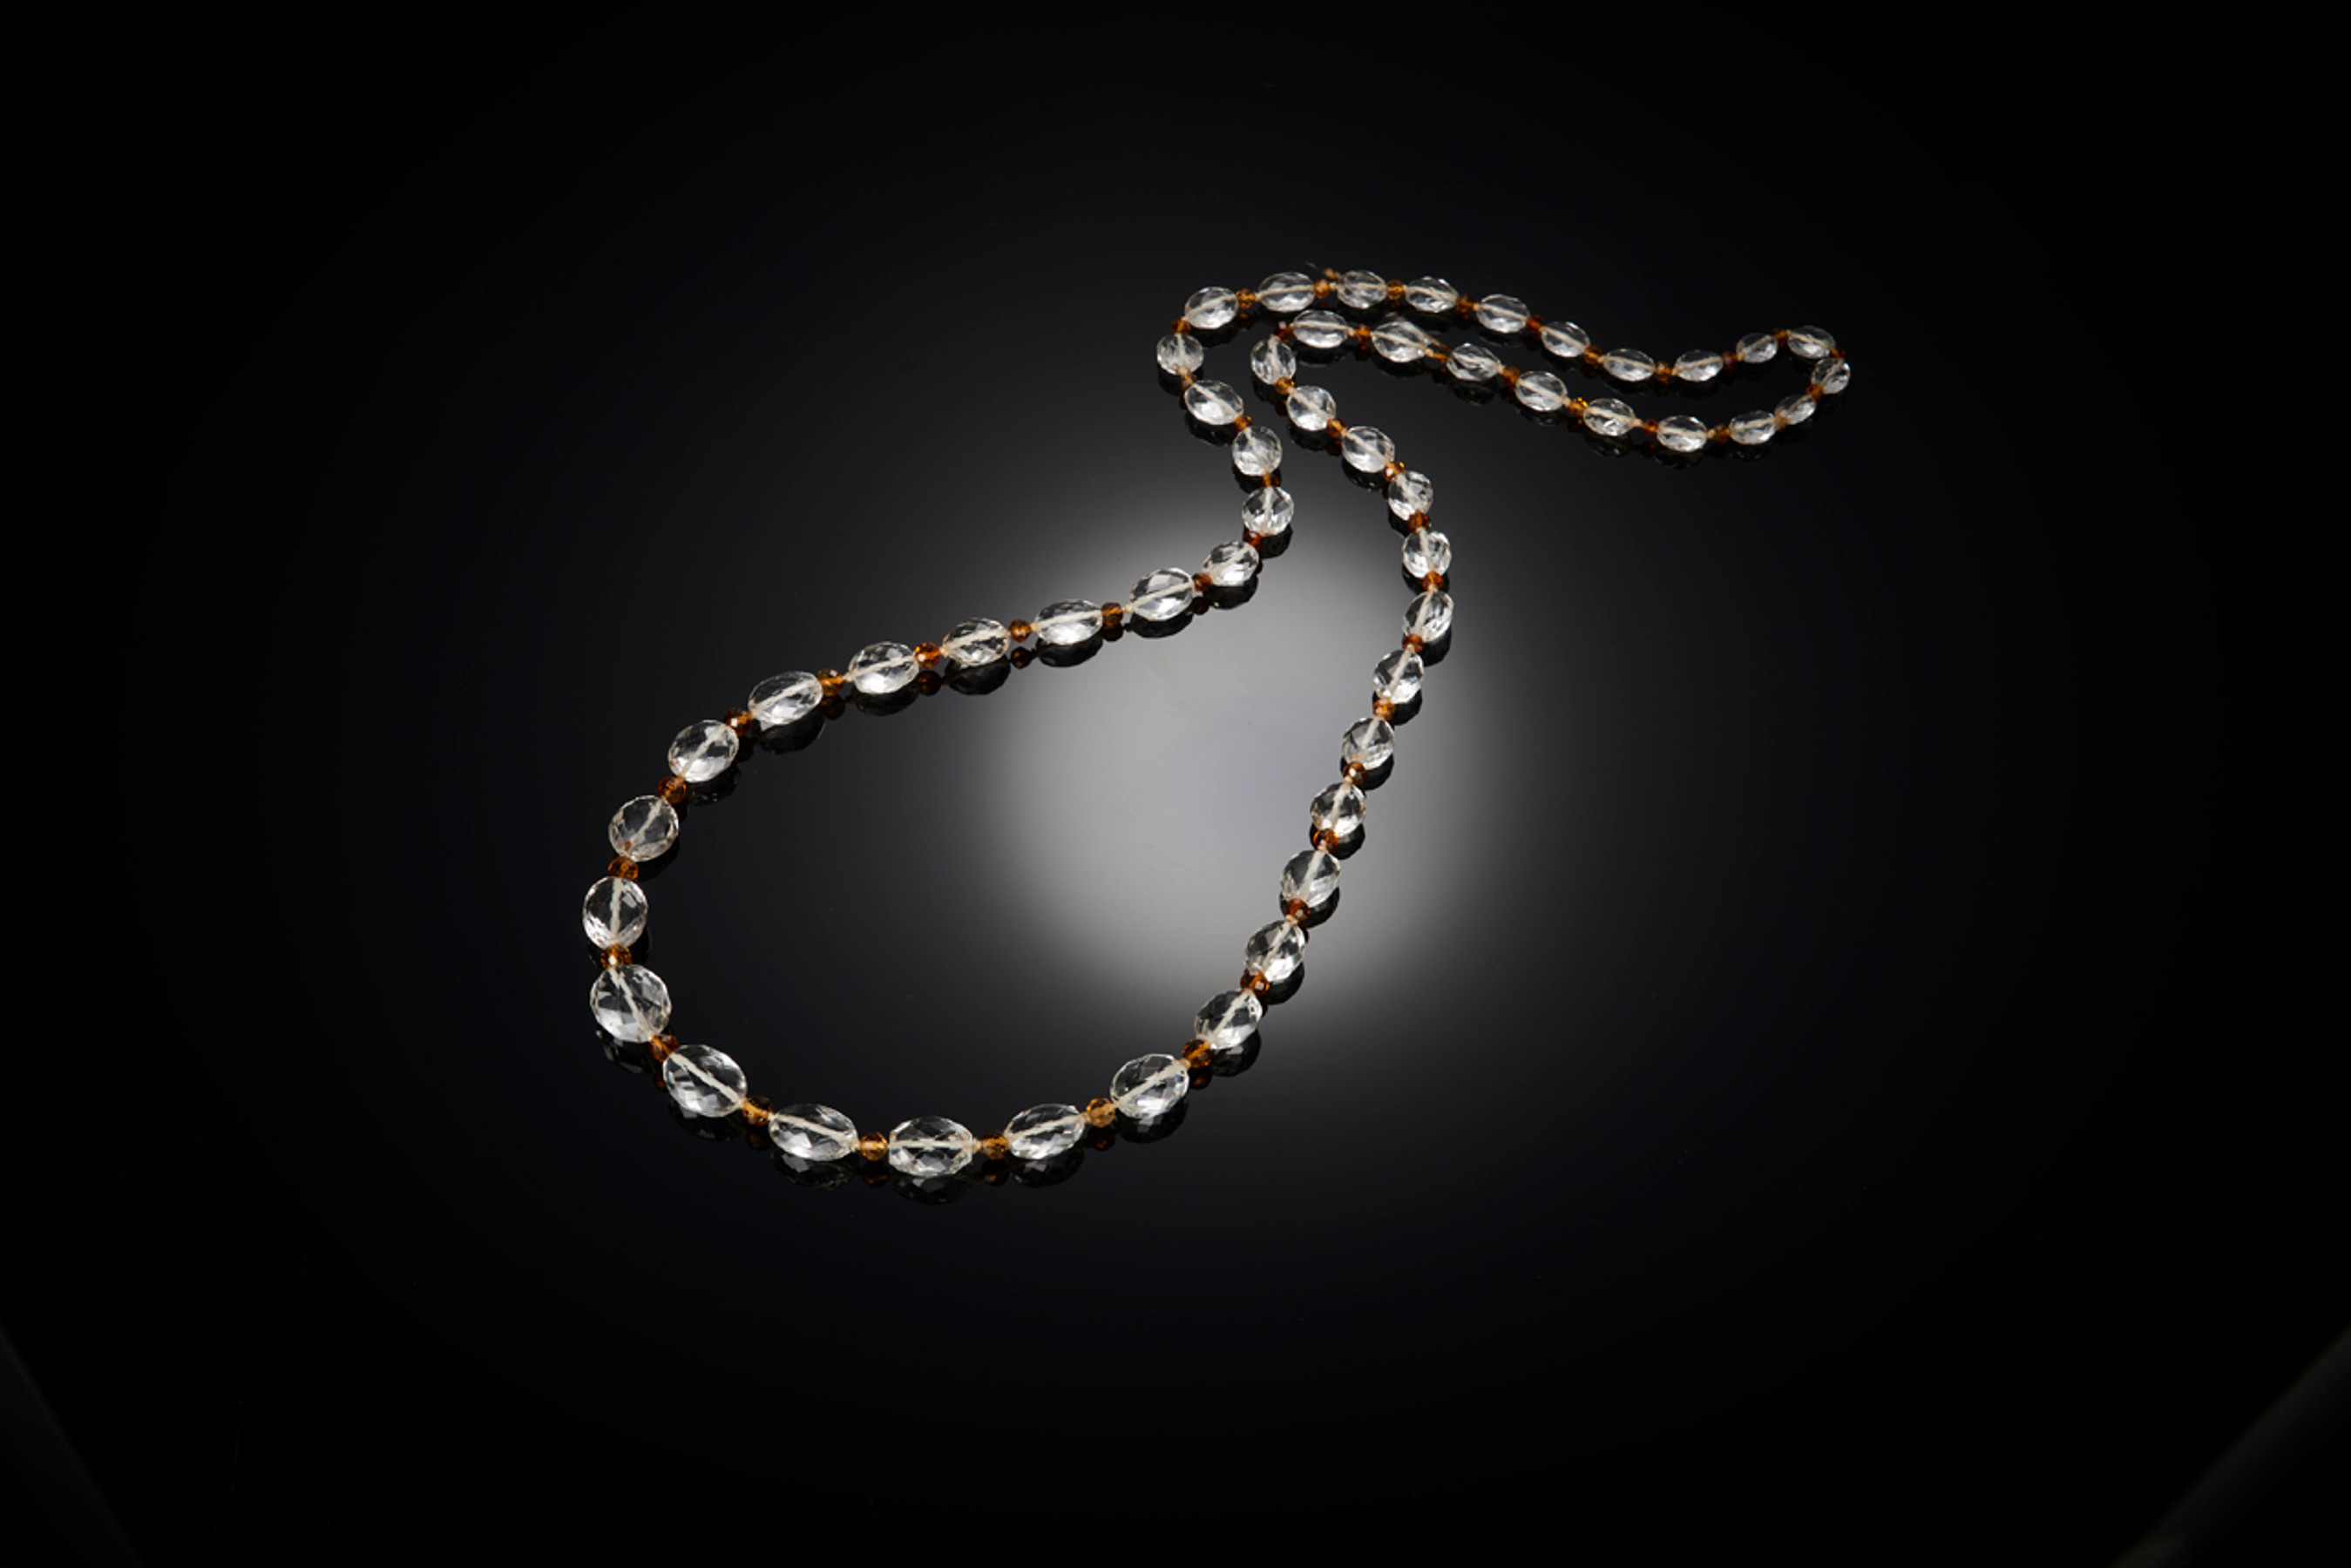 Strand of Faceted Crystal and Citrine Beads Necklace